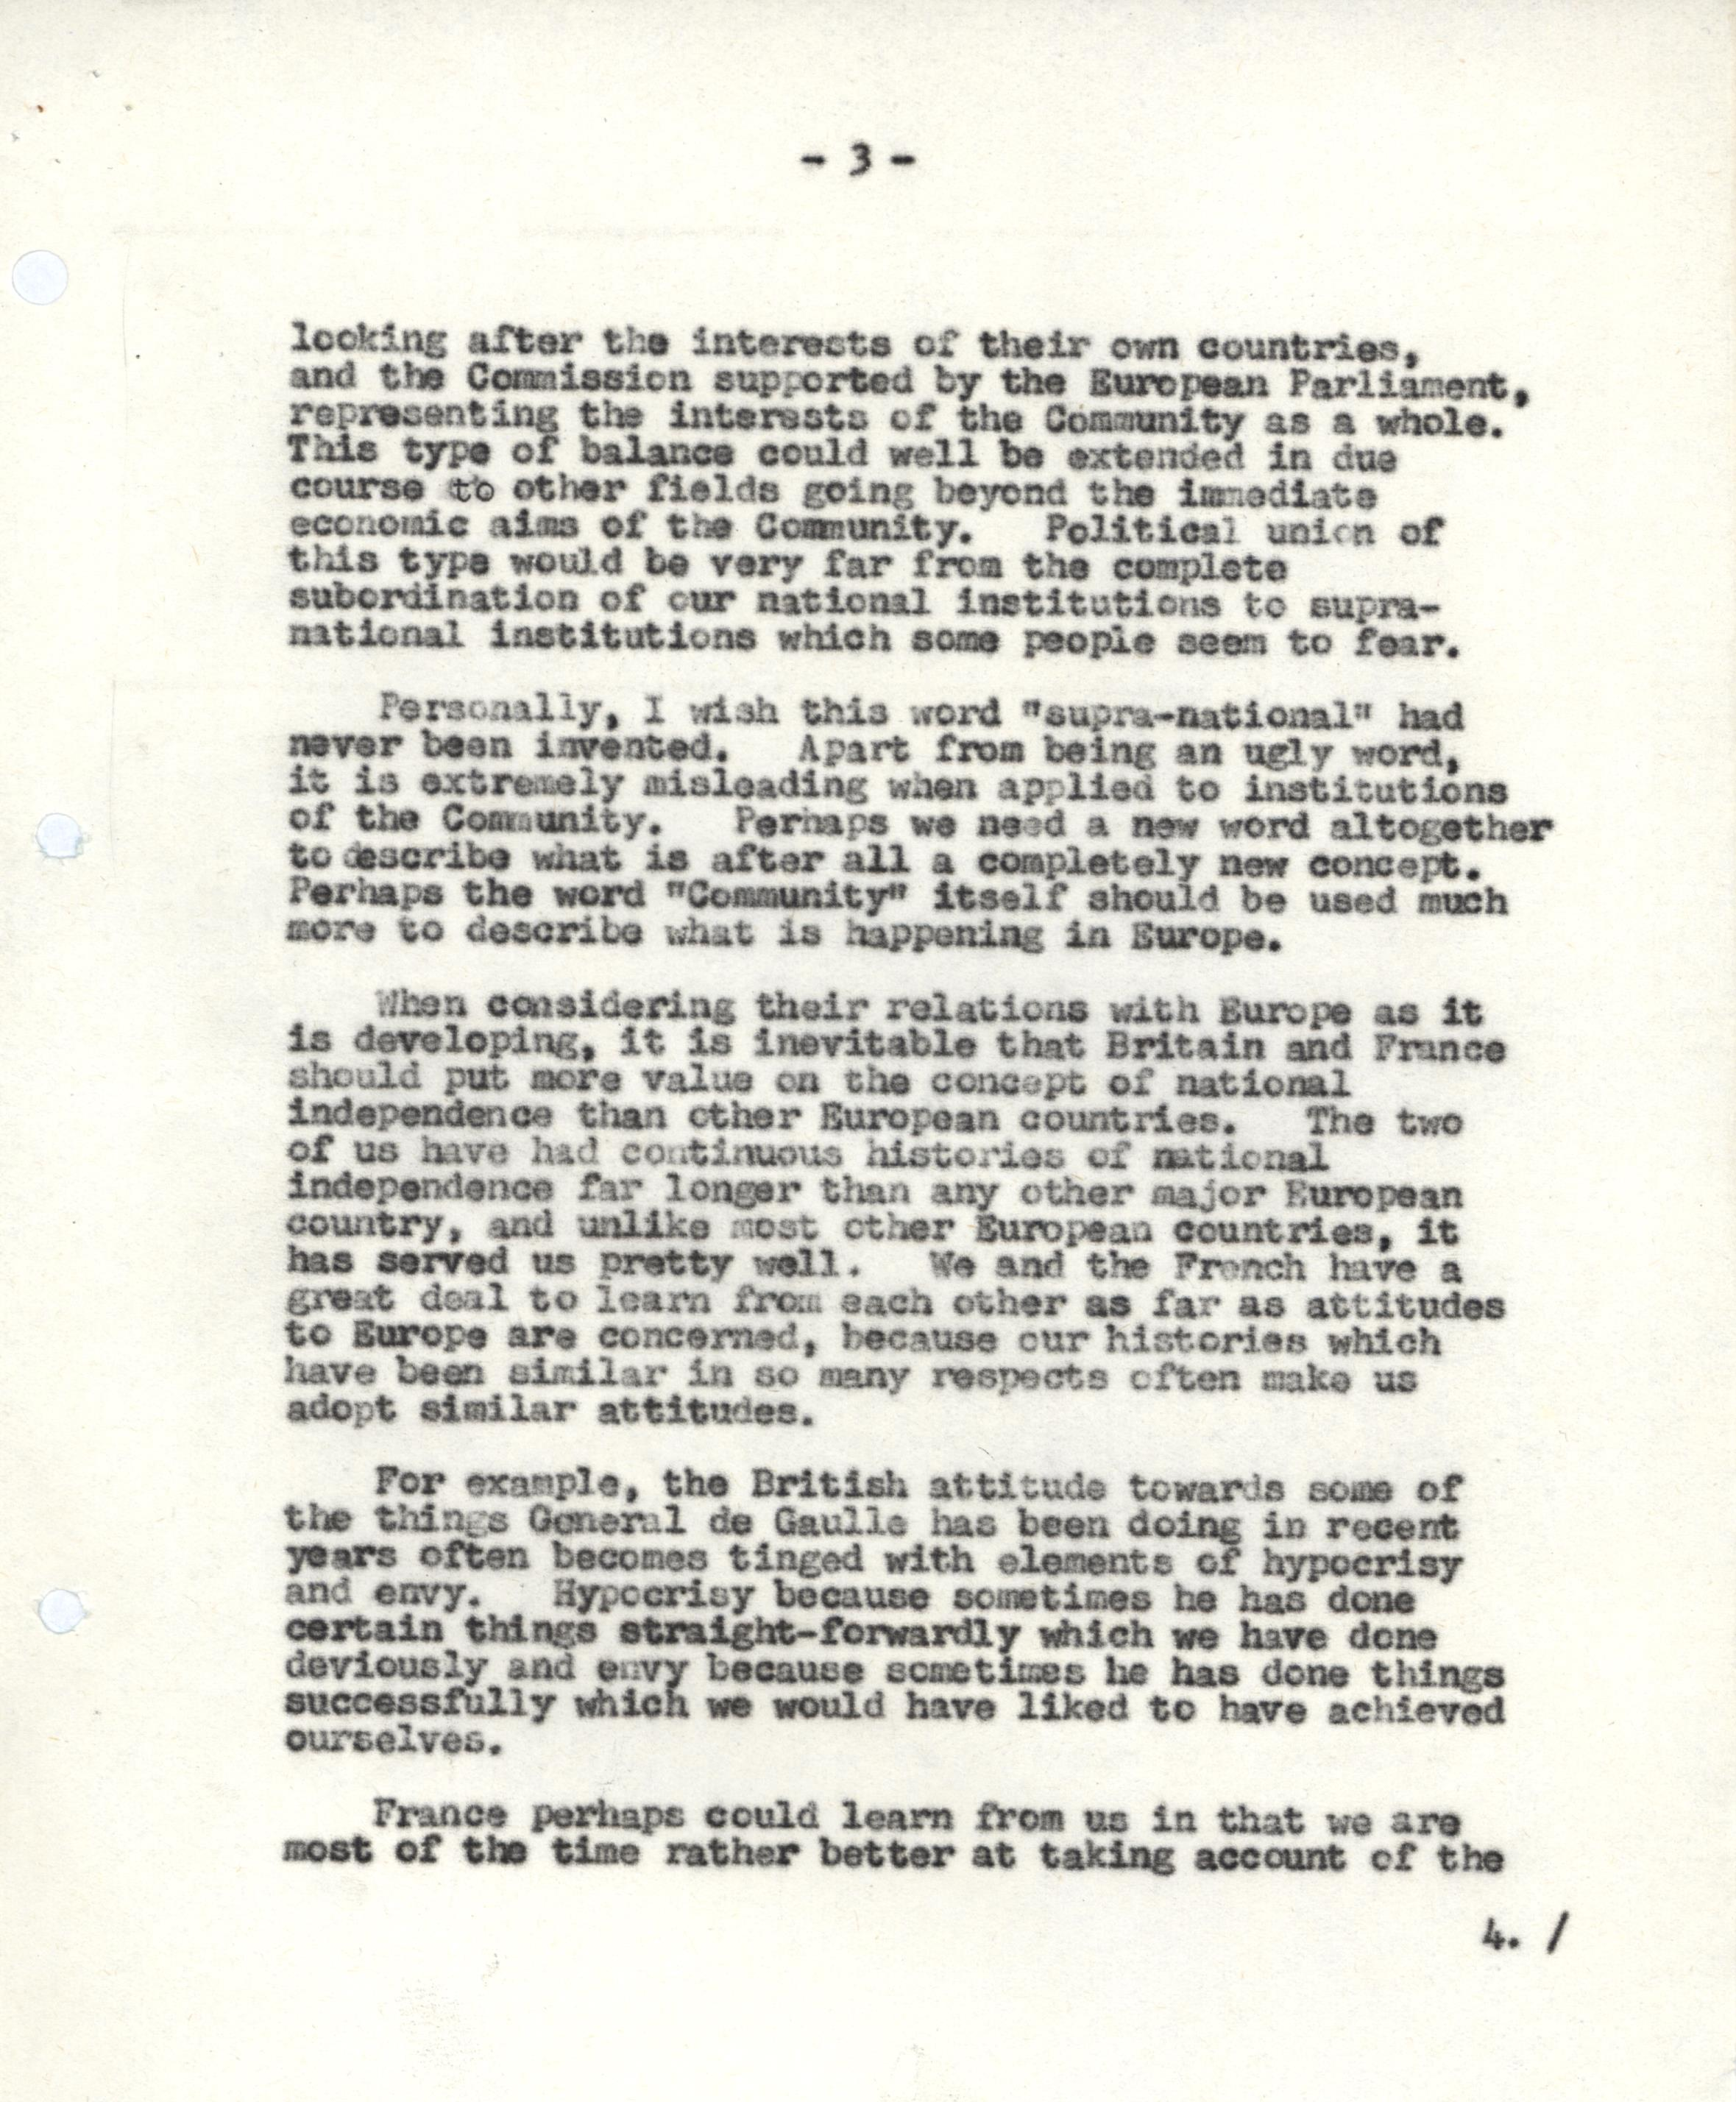 CRD 3/10/2/1/1: 'Brief for Mr Heath for the Television Programme 'Britain in Search of a Continent' on 9th June' (8 Jun 1966).